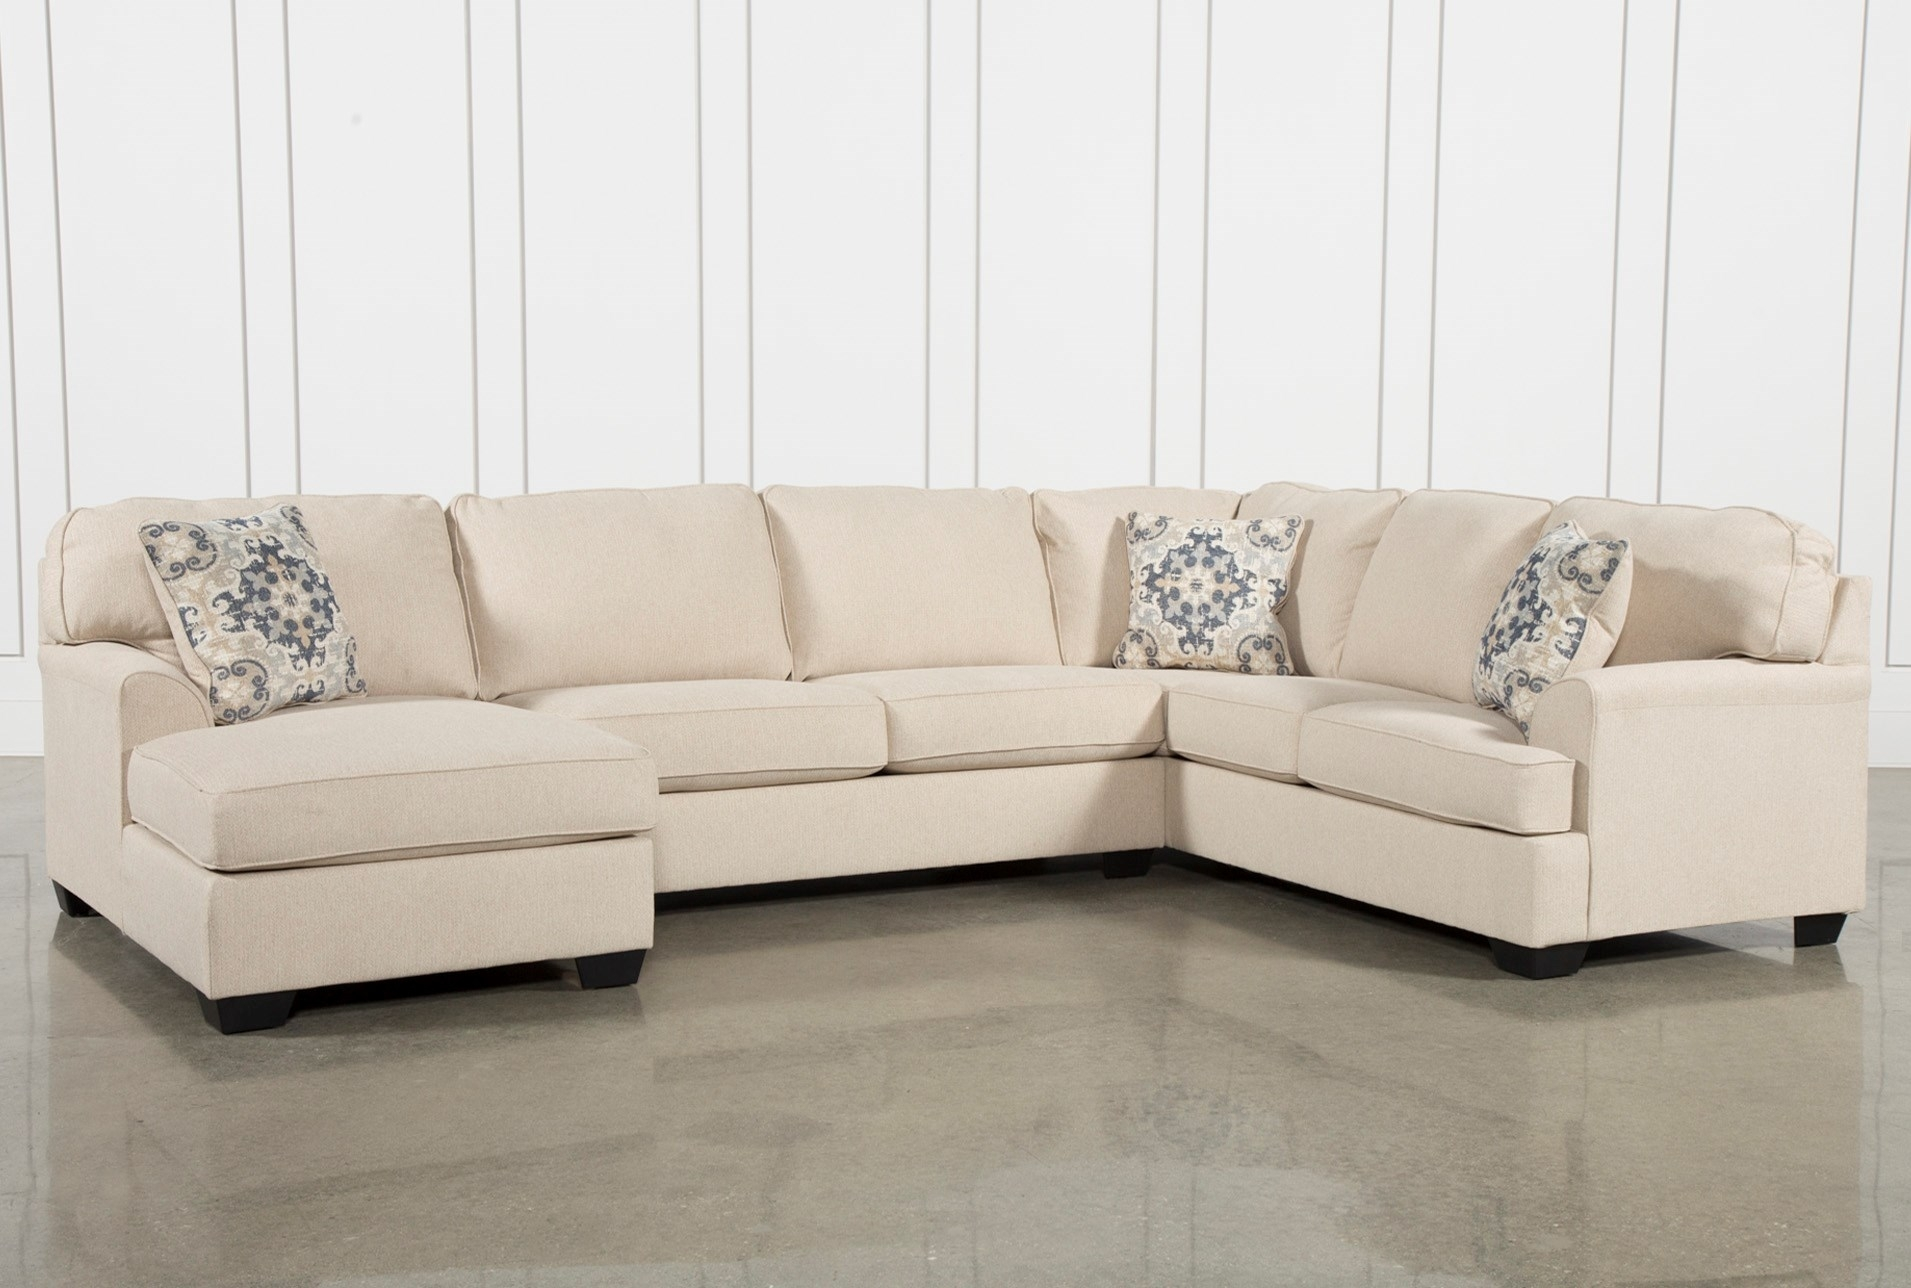 Laf Sectional - Acwc inside Avery 2 Piece Sectionals With Laf Armless Chaise (Image 15 of 30)